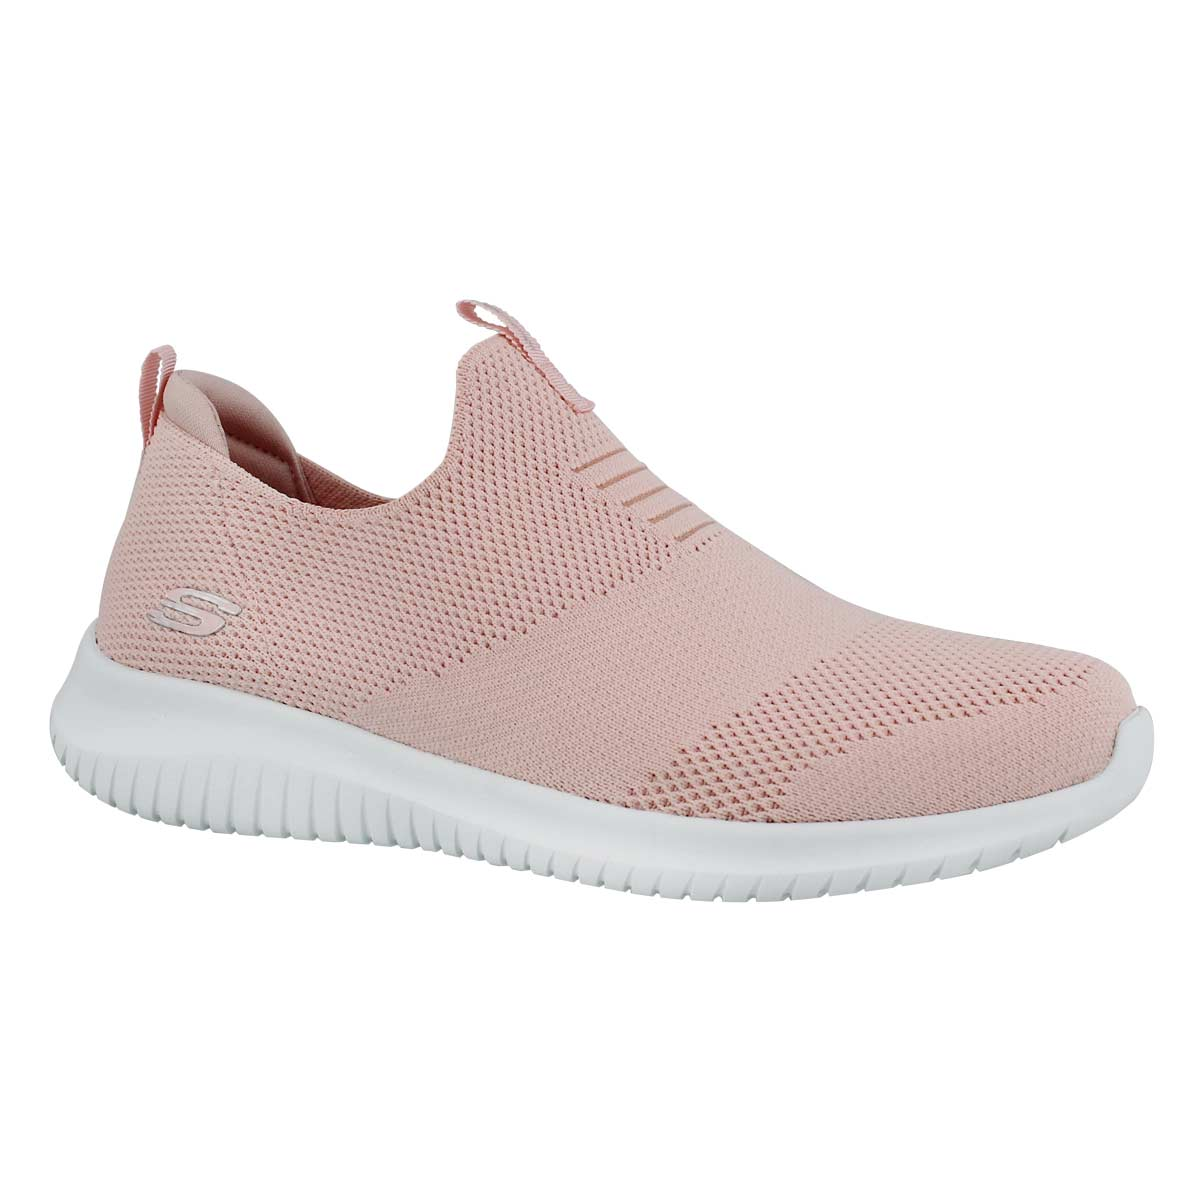 Women's ULTRA FLEX light pink slip on sneakers